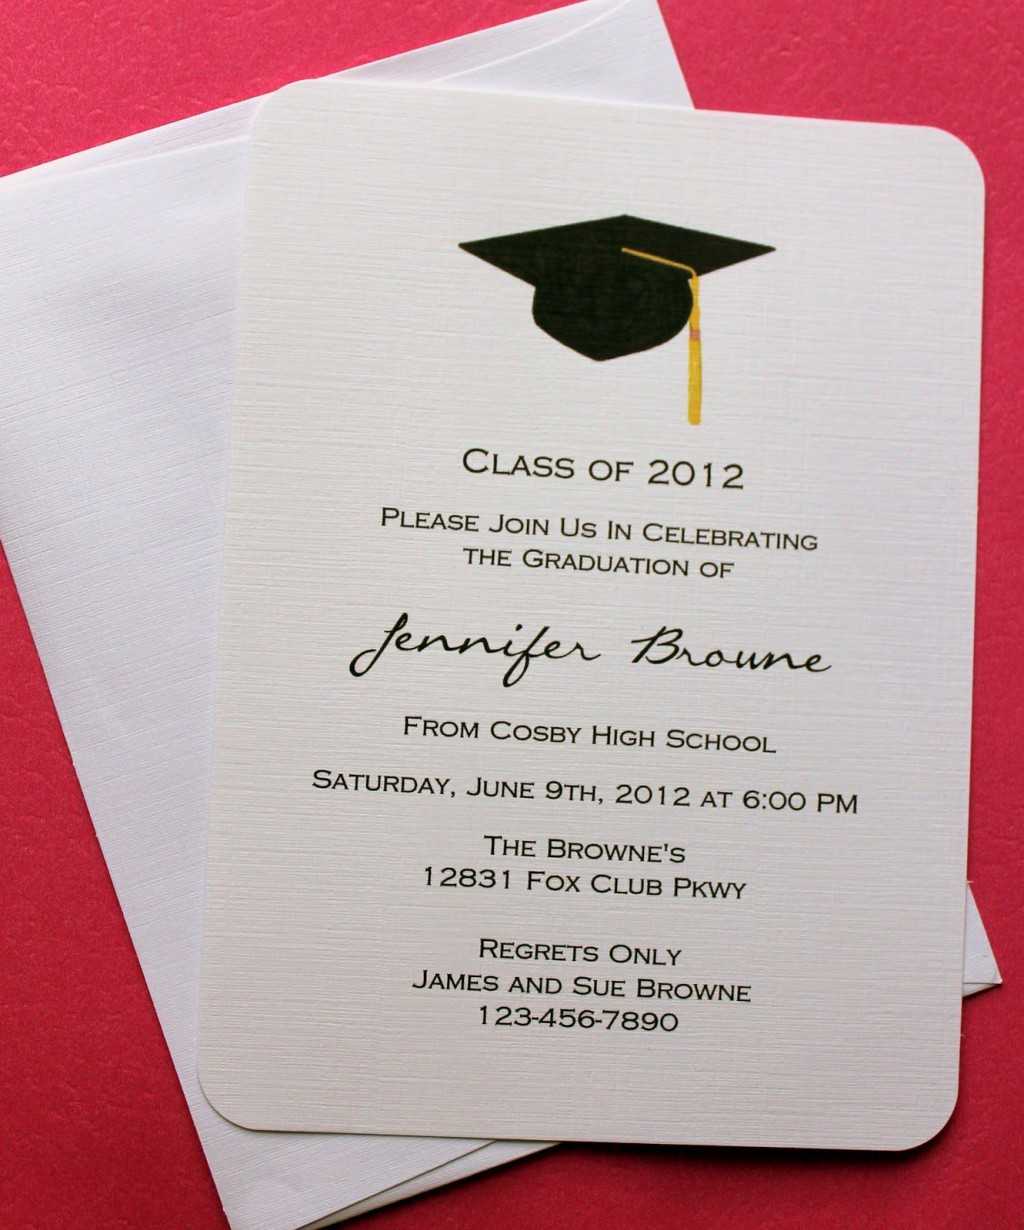 007 Fantastic College Graduation Invitation Template Image  Party Free For WordLarge